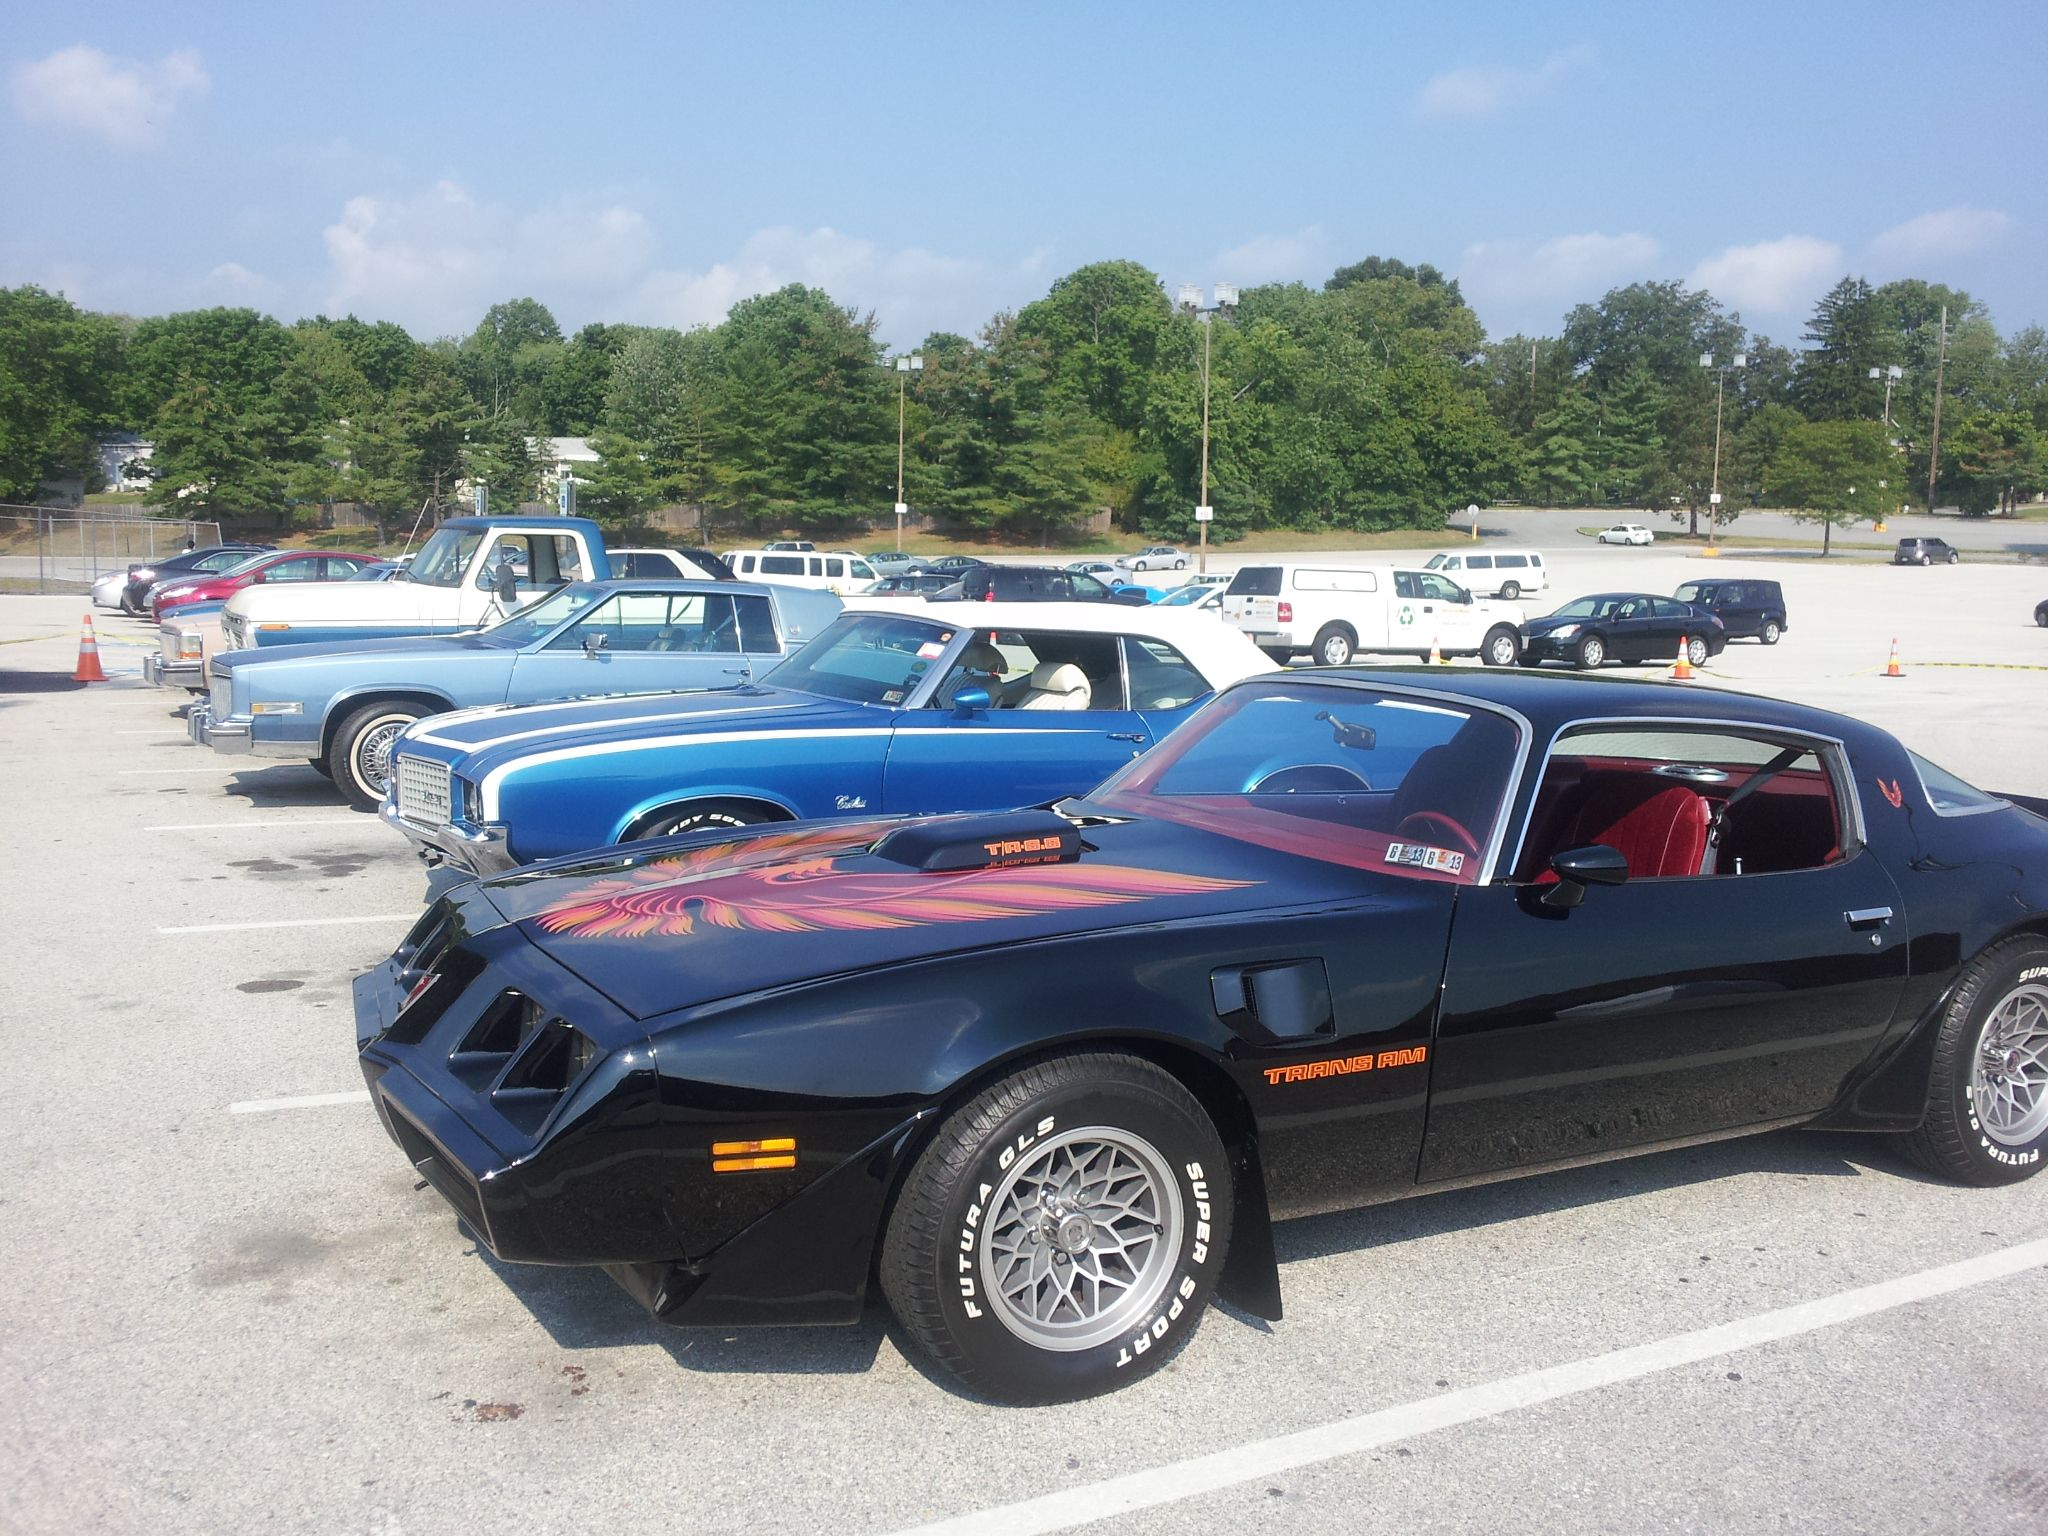 Classic Cars for the mall parking lot scene.